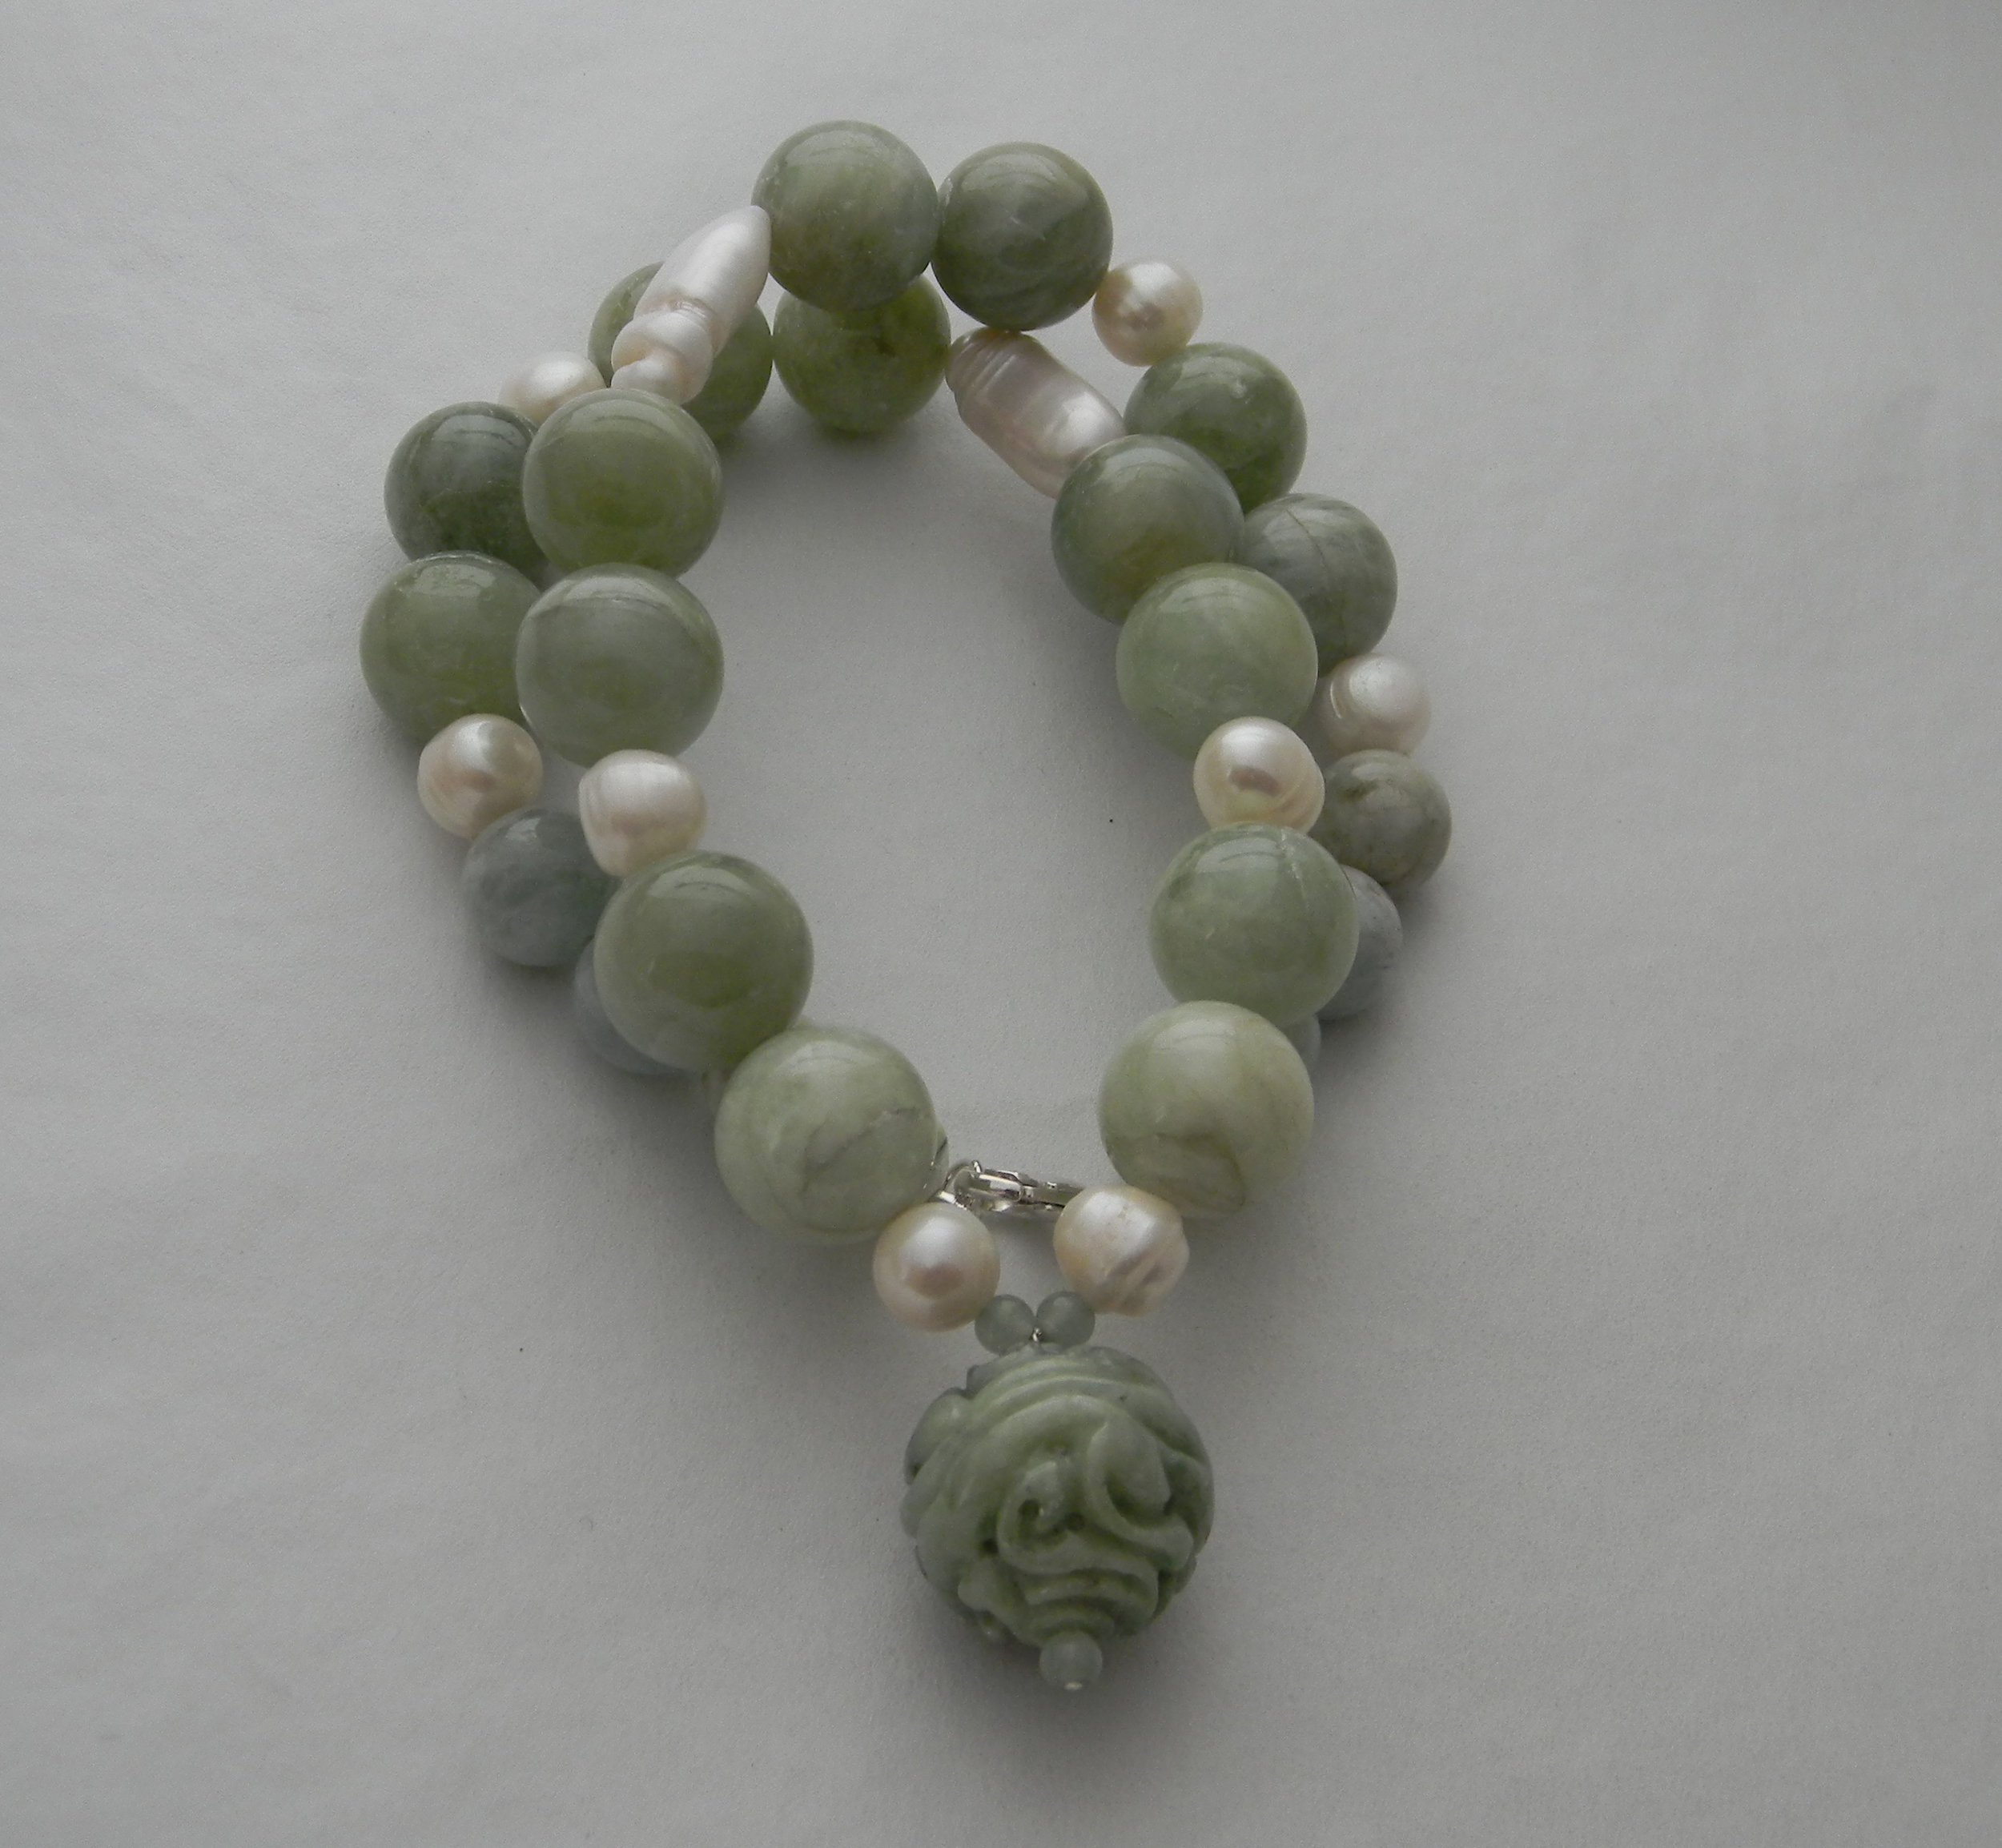 Green jade pendant on green aquamarine beads necklace & cultured pearl charms ,